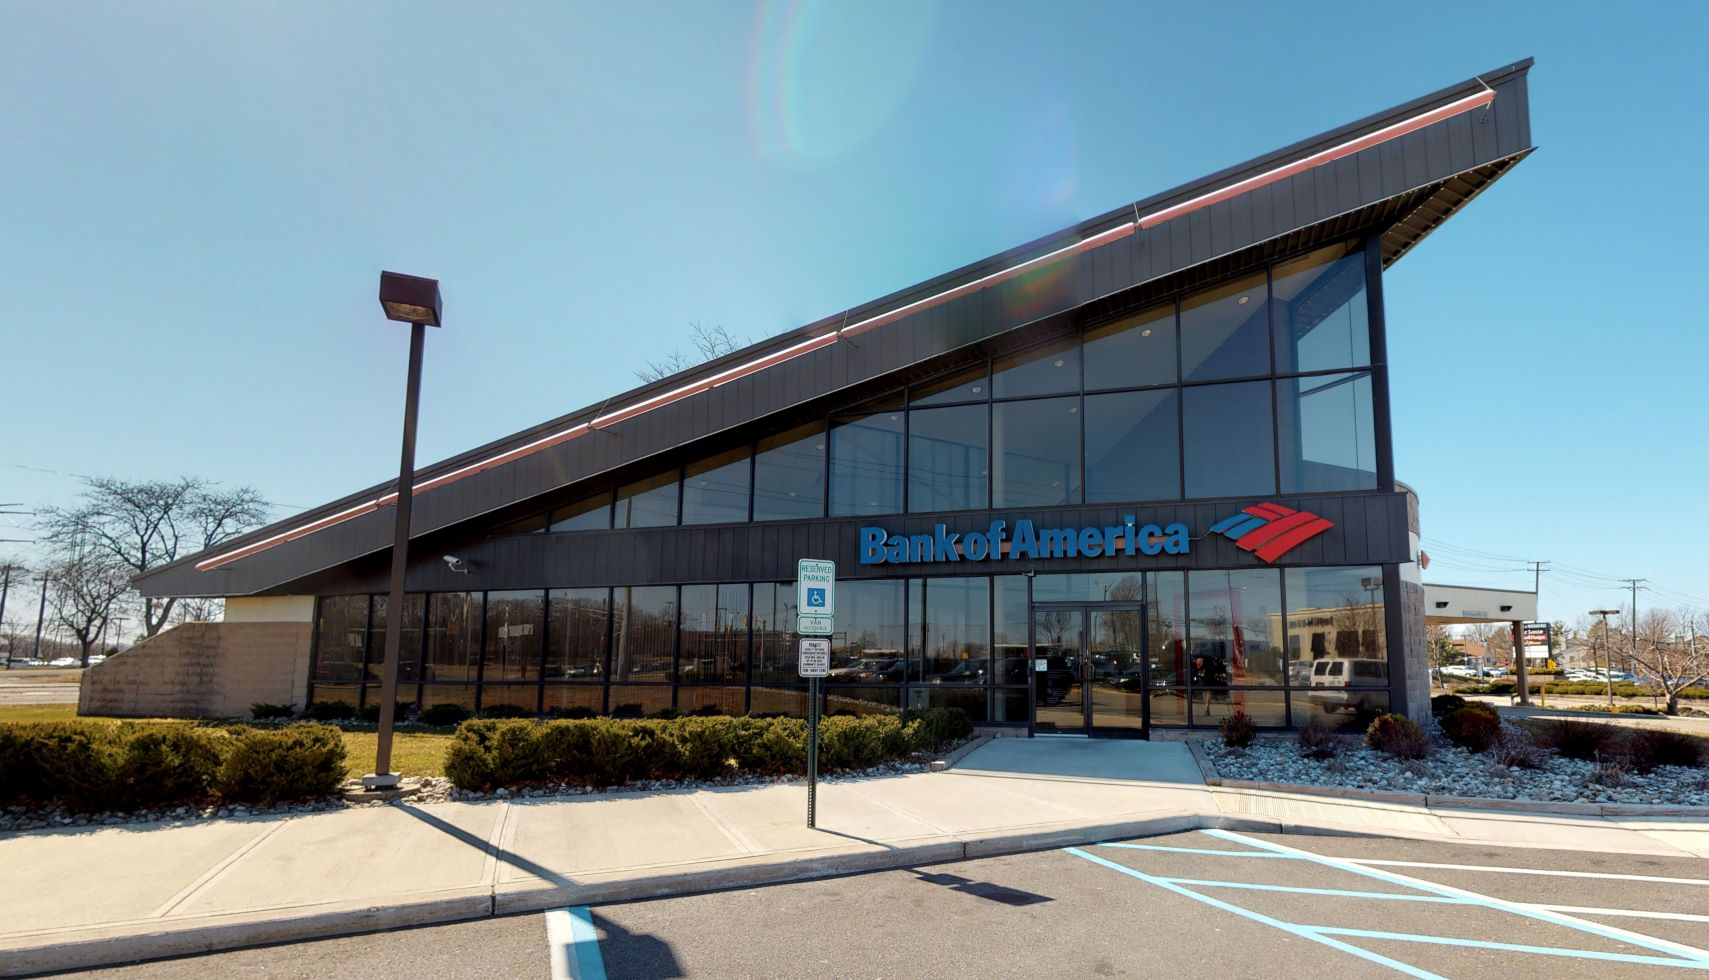 Bank of America financial center with drive-thru ATM | 655 US Highway 1, Iselin, NJ 08830